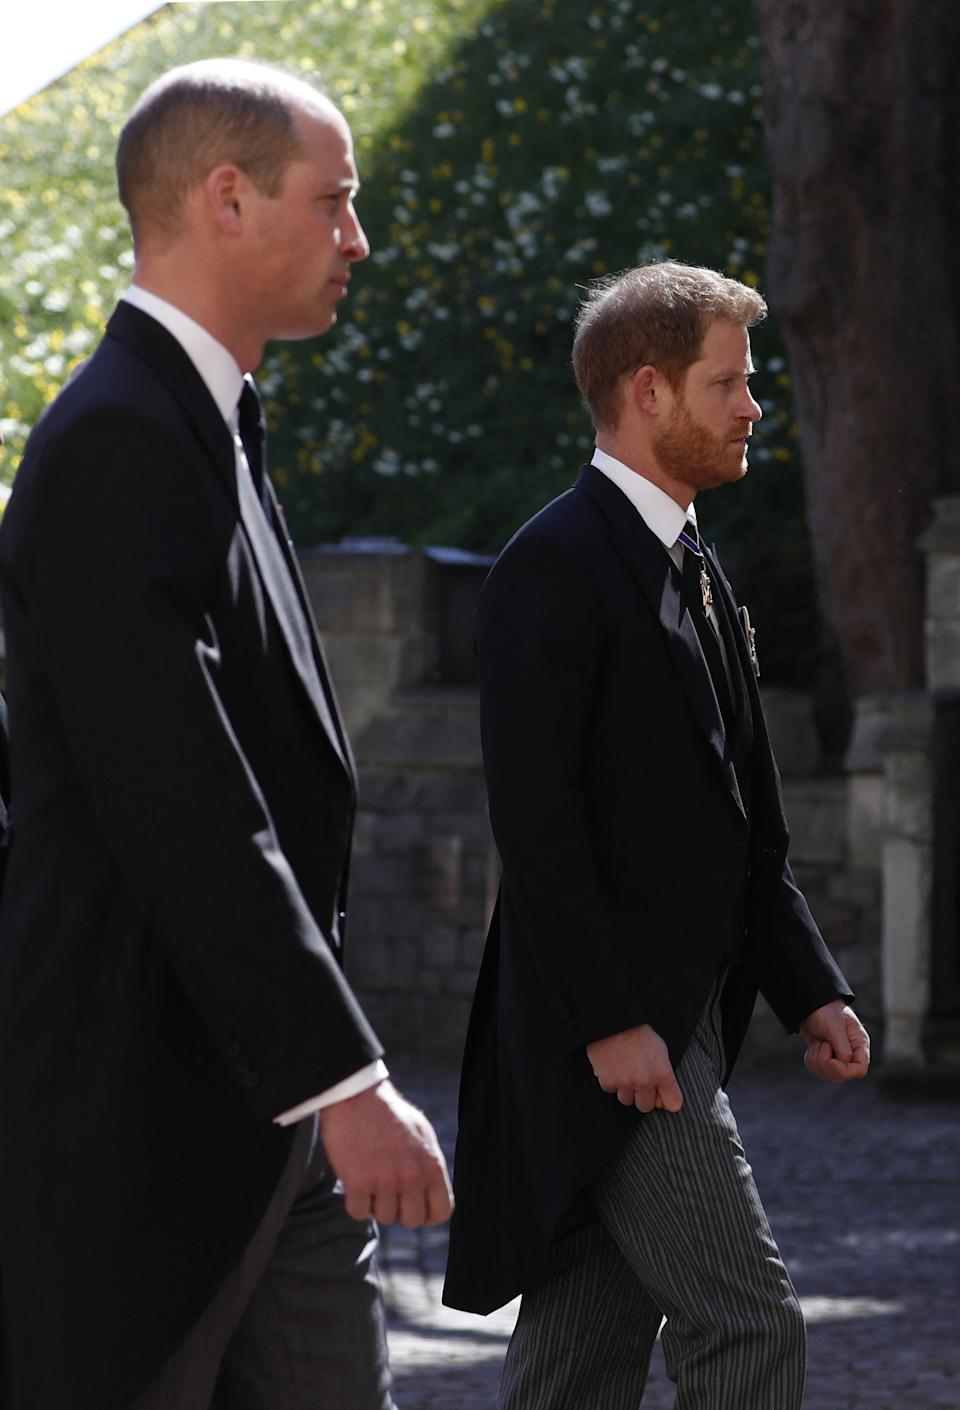 Britain's Prince William, Duke of Cambridge (C) and Britain's Prince Harry, Duke of Sussex, (R) follow the coffin during the ceremonial funeral procession of Britain's Prince Philip, Duke of Edinburgh to St George's Chapel in Windsor Castle in Windsor on April 17, 2021